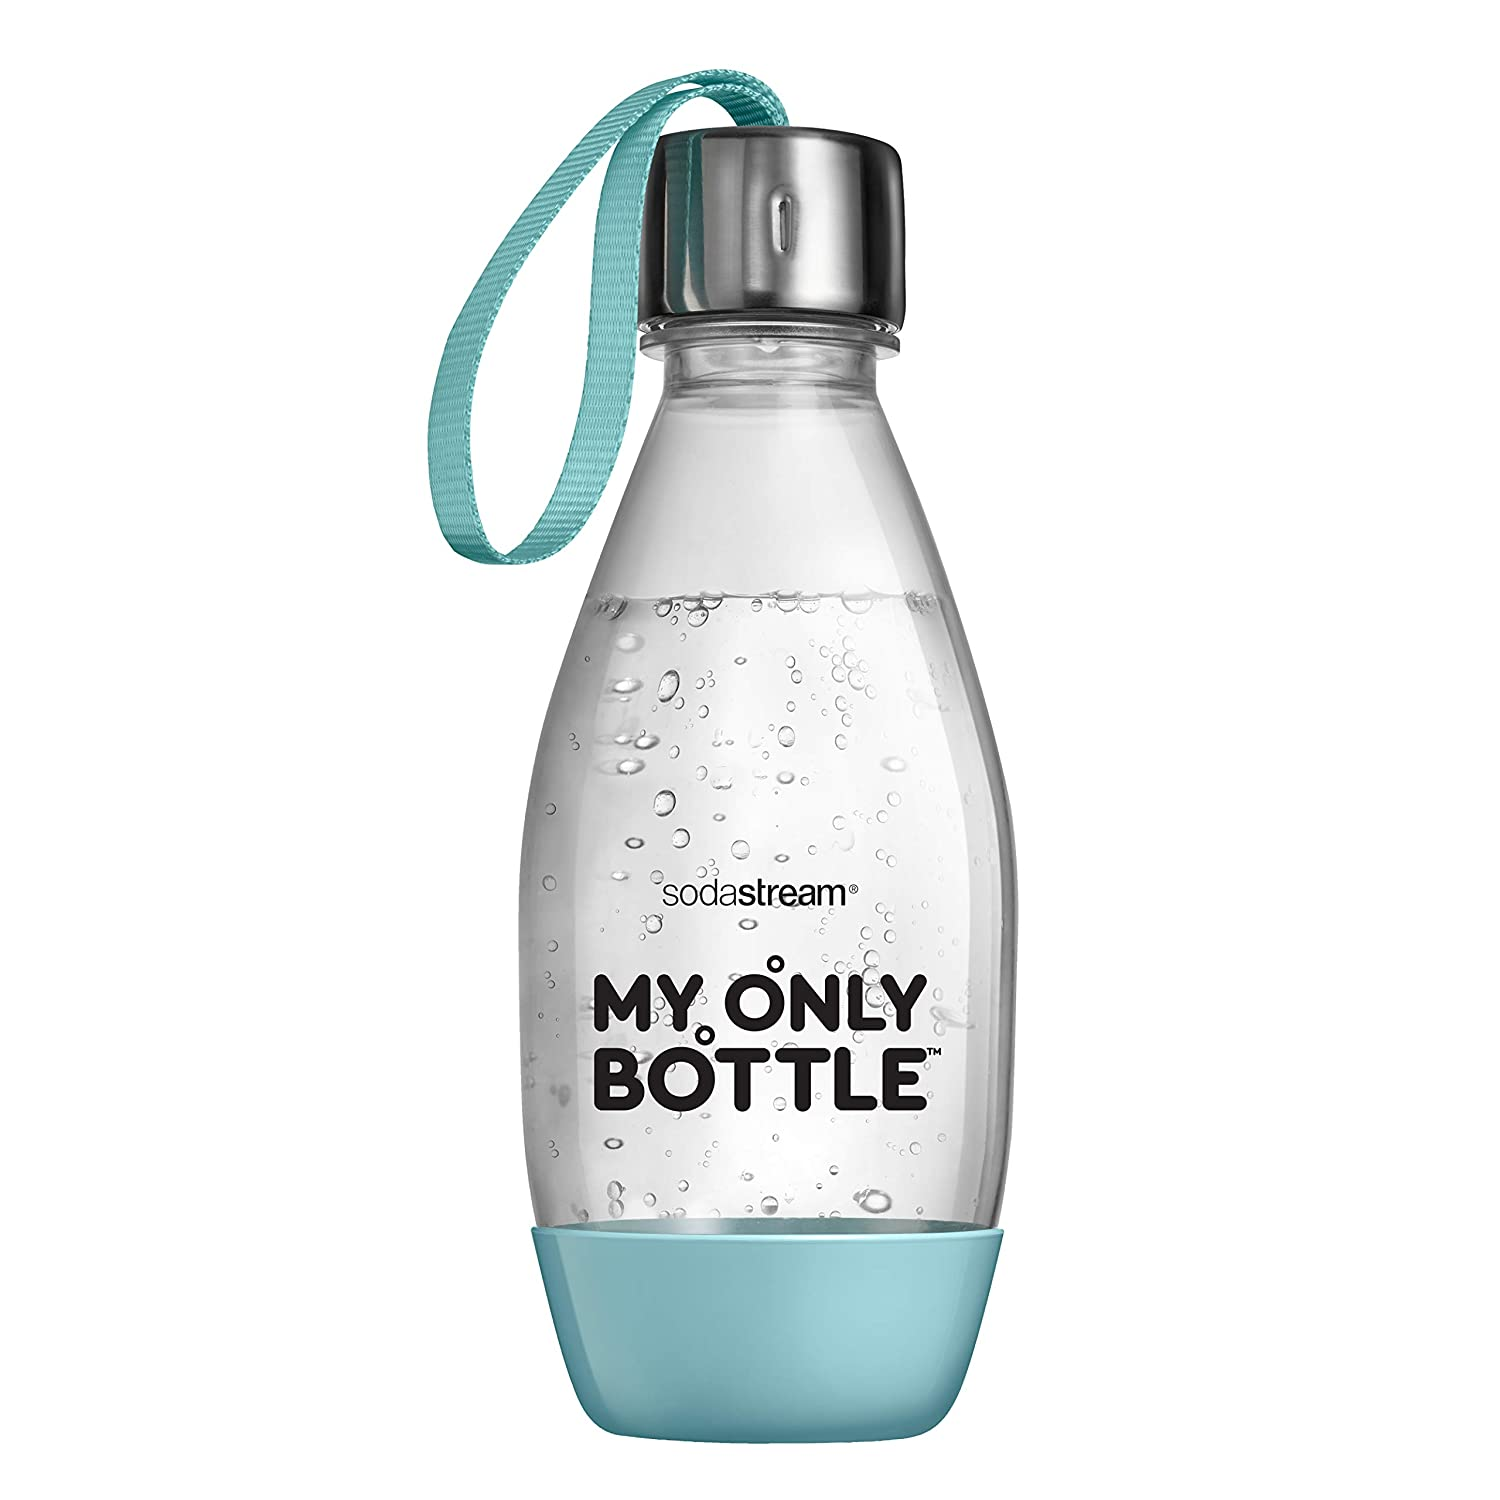 SodaStream 0.5 Liter My Only Bottle Icy Blue